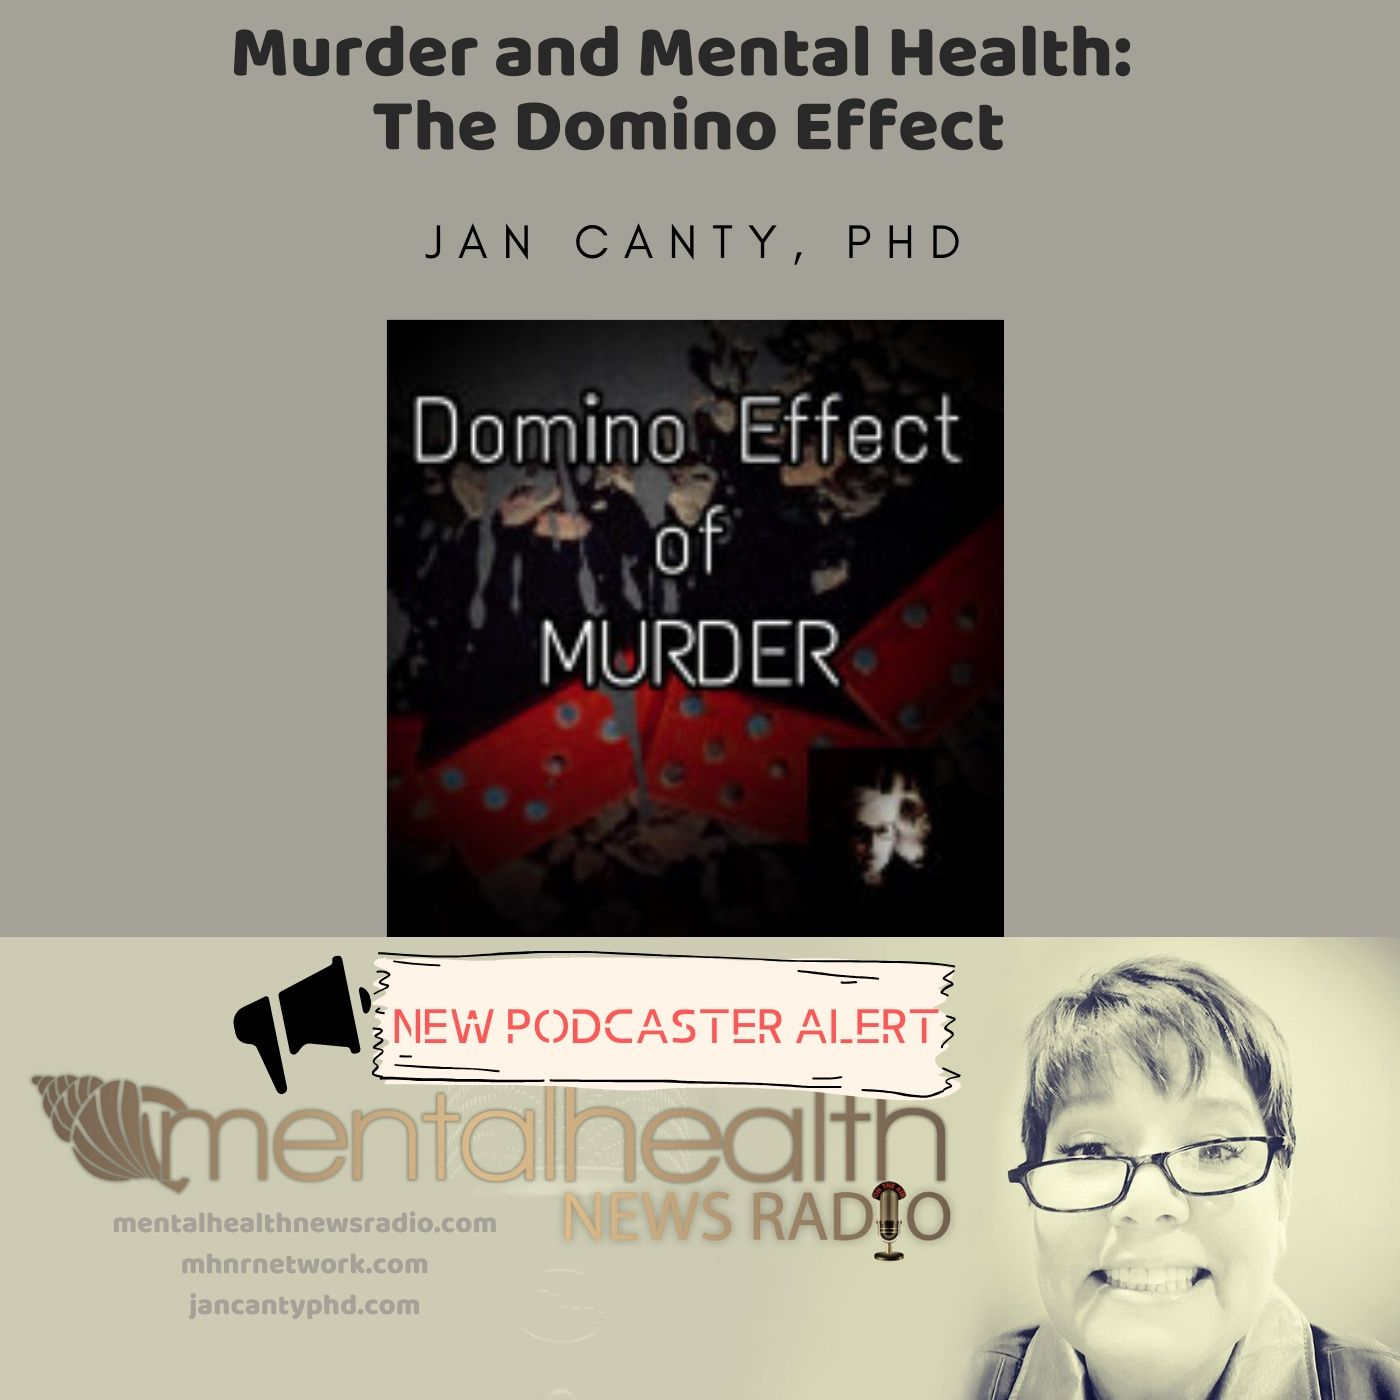 Mental Health News Radio - Murder and Mental Health: The Domino Effect